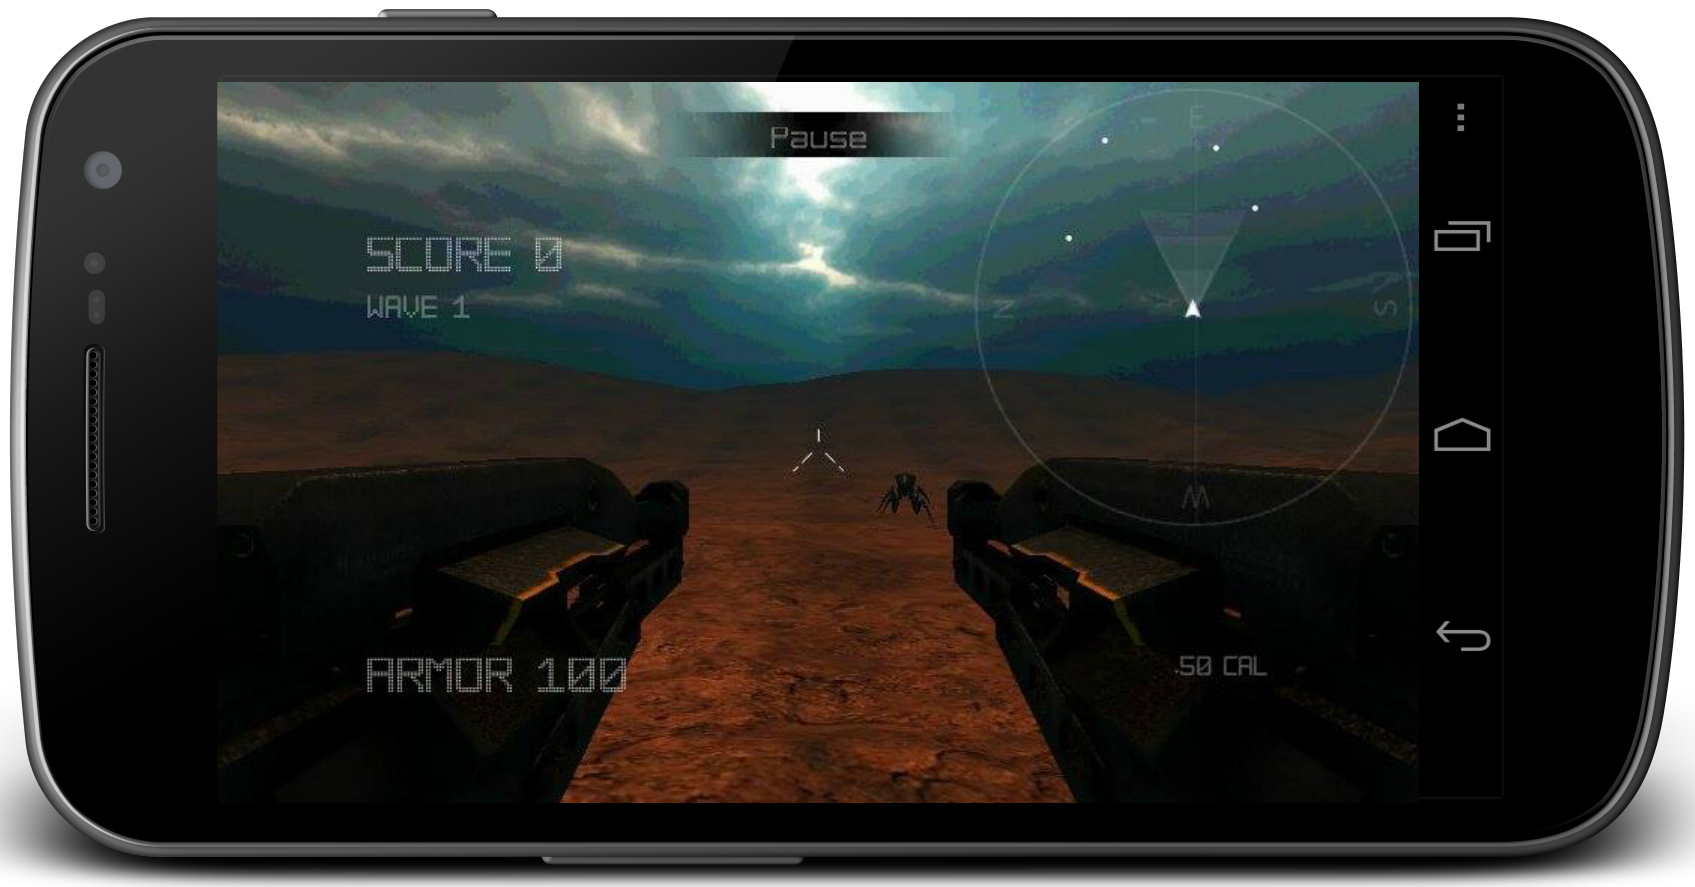 Team fortress 2 apk mod   Download Team Fortress 2 for PC